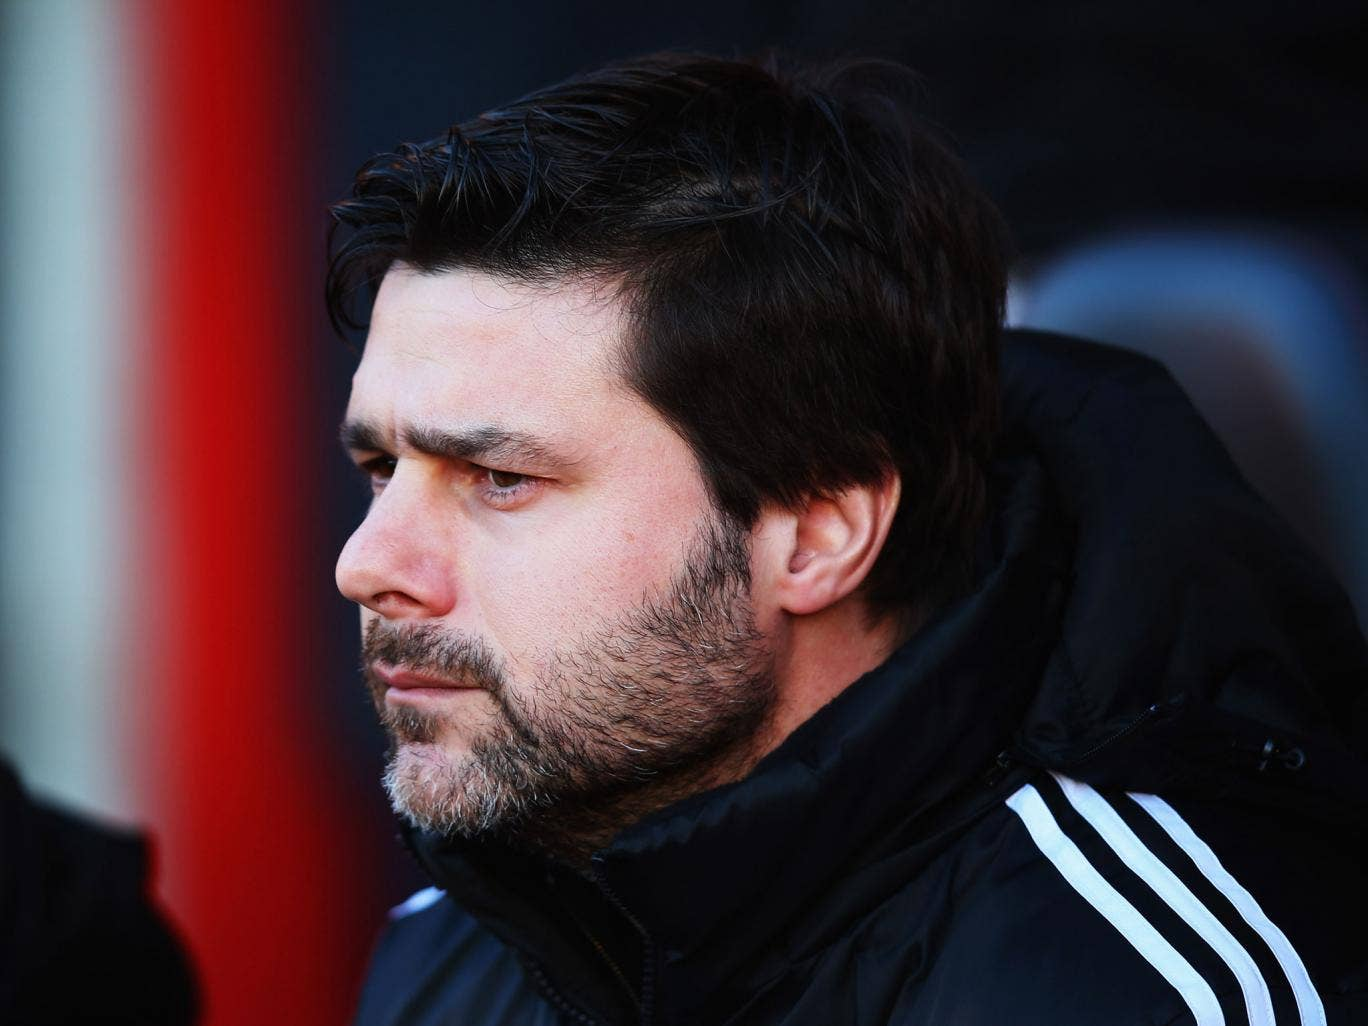 Southampton manager Mauricio Pochettino could choose to leave the club after the resignation of chairman Nicola Cortese on Wednesday